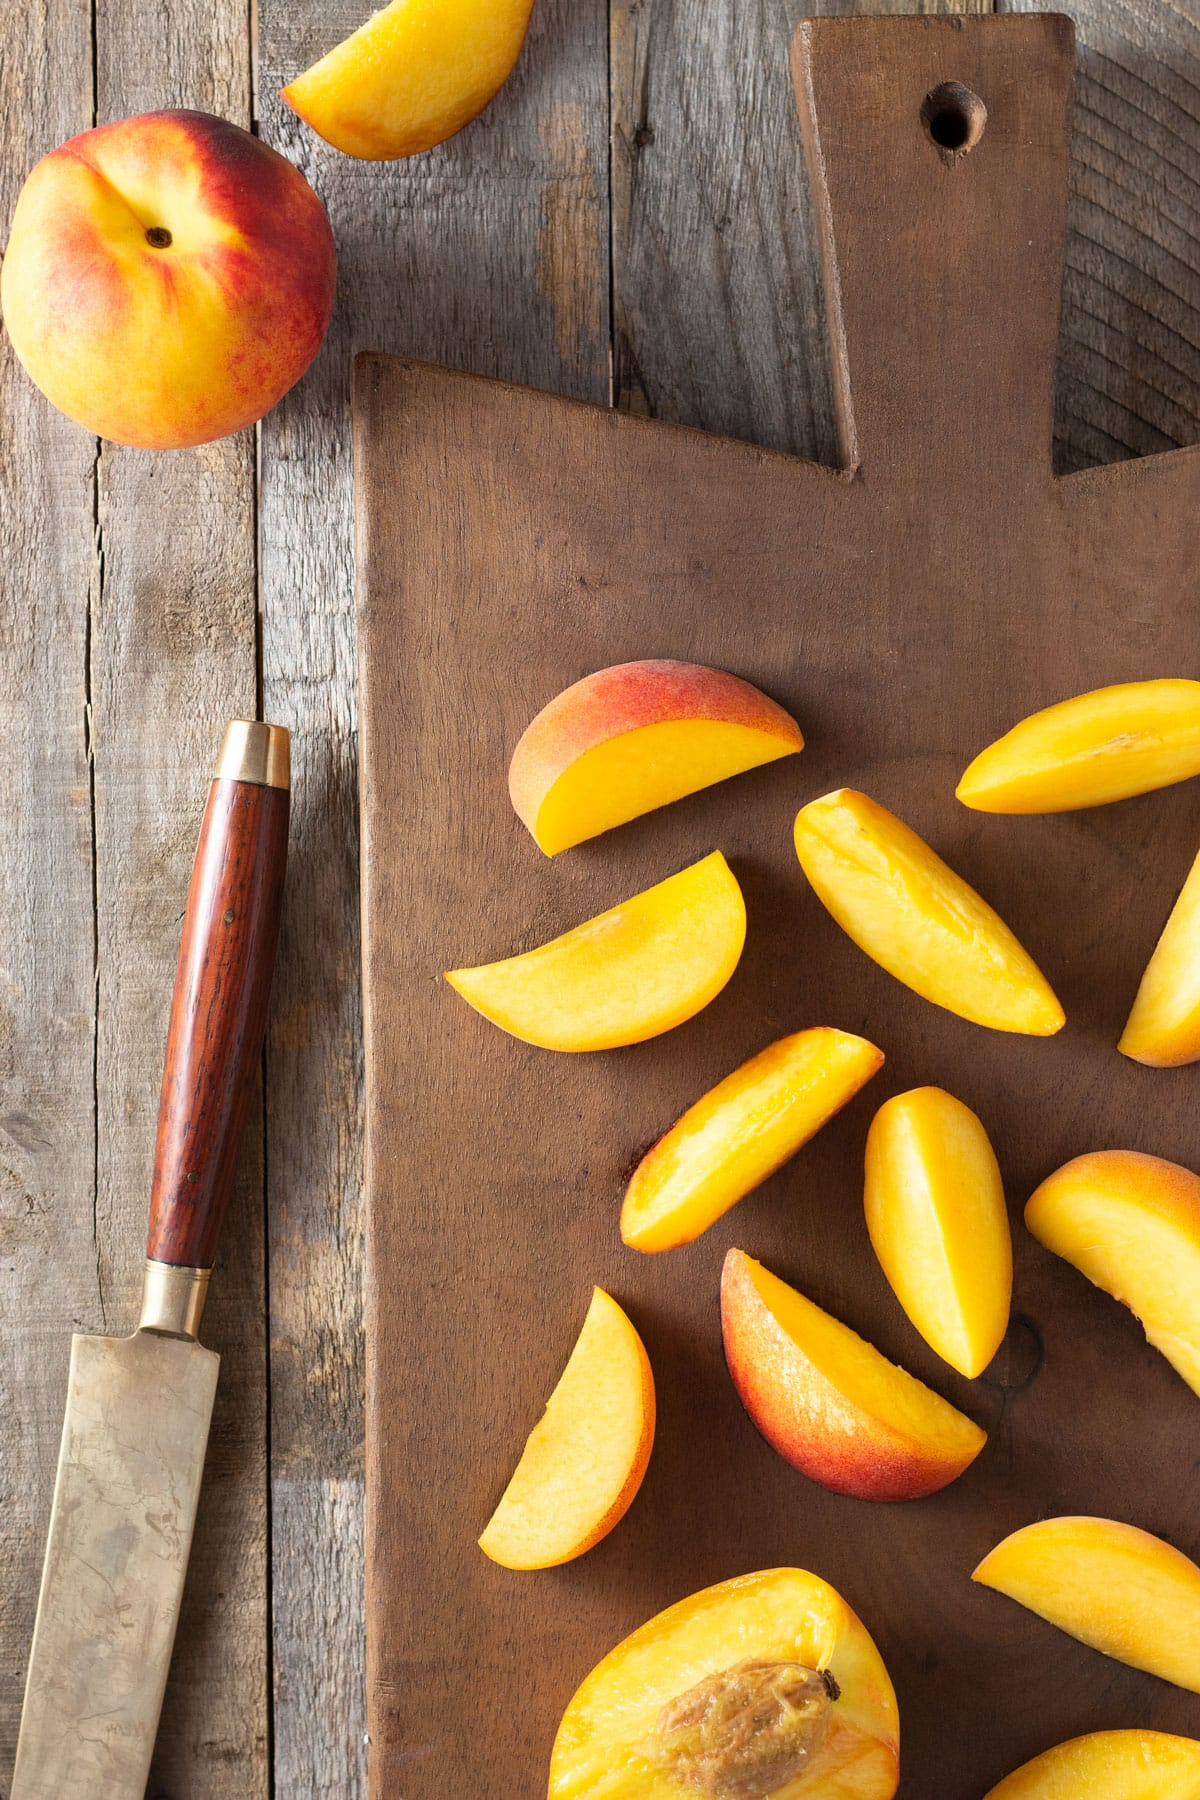 Sliced Peaches on a wood cutting board next to a whole peach and a knife.